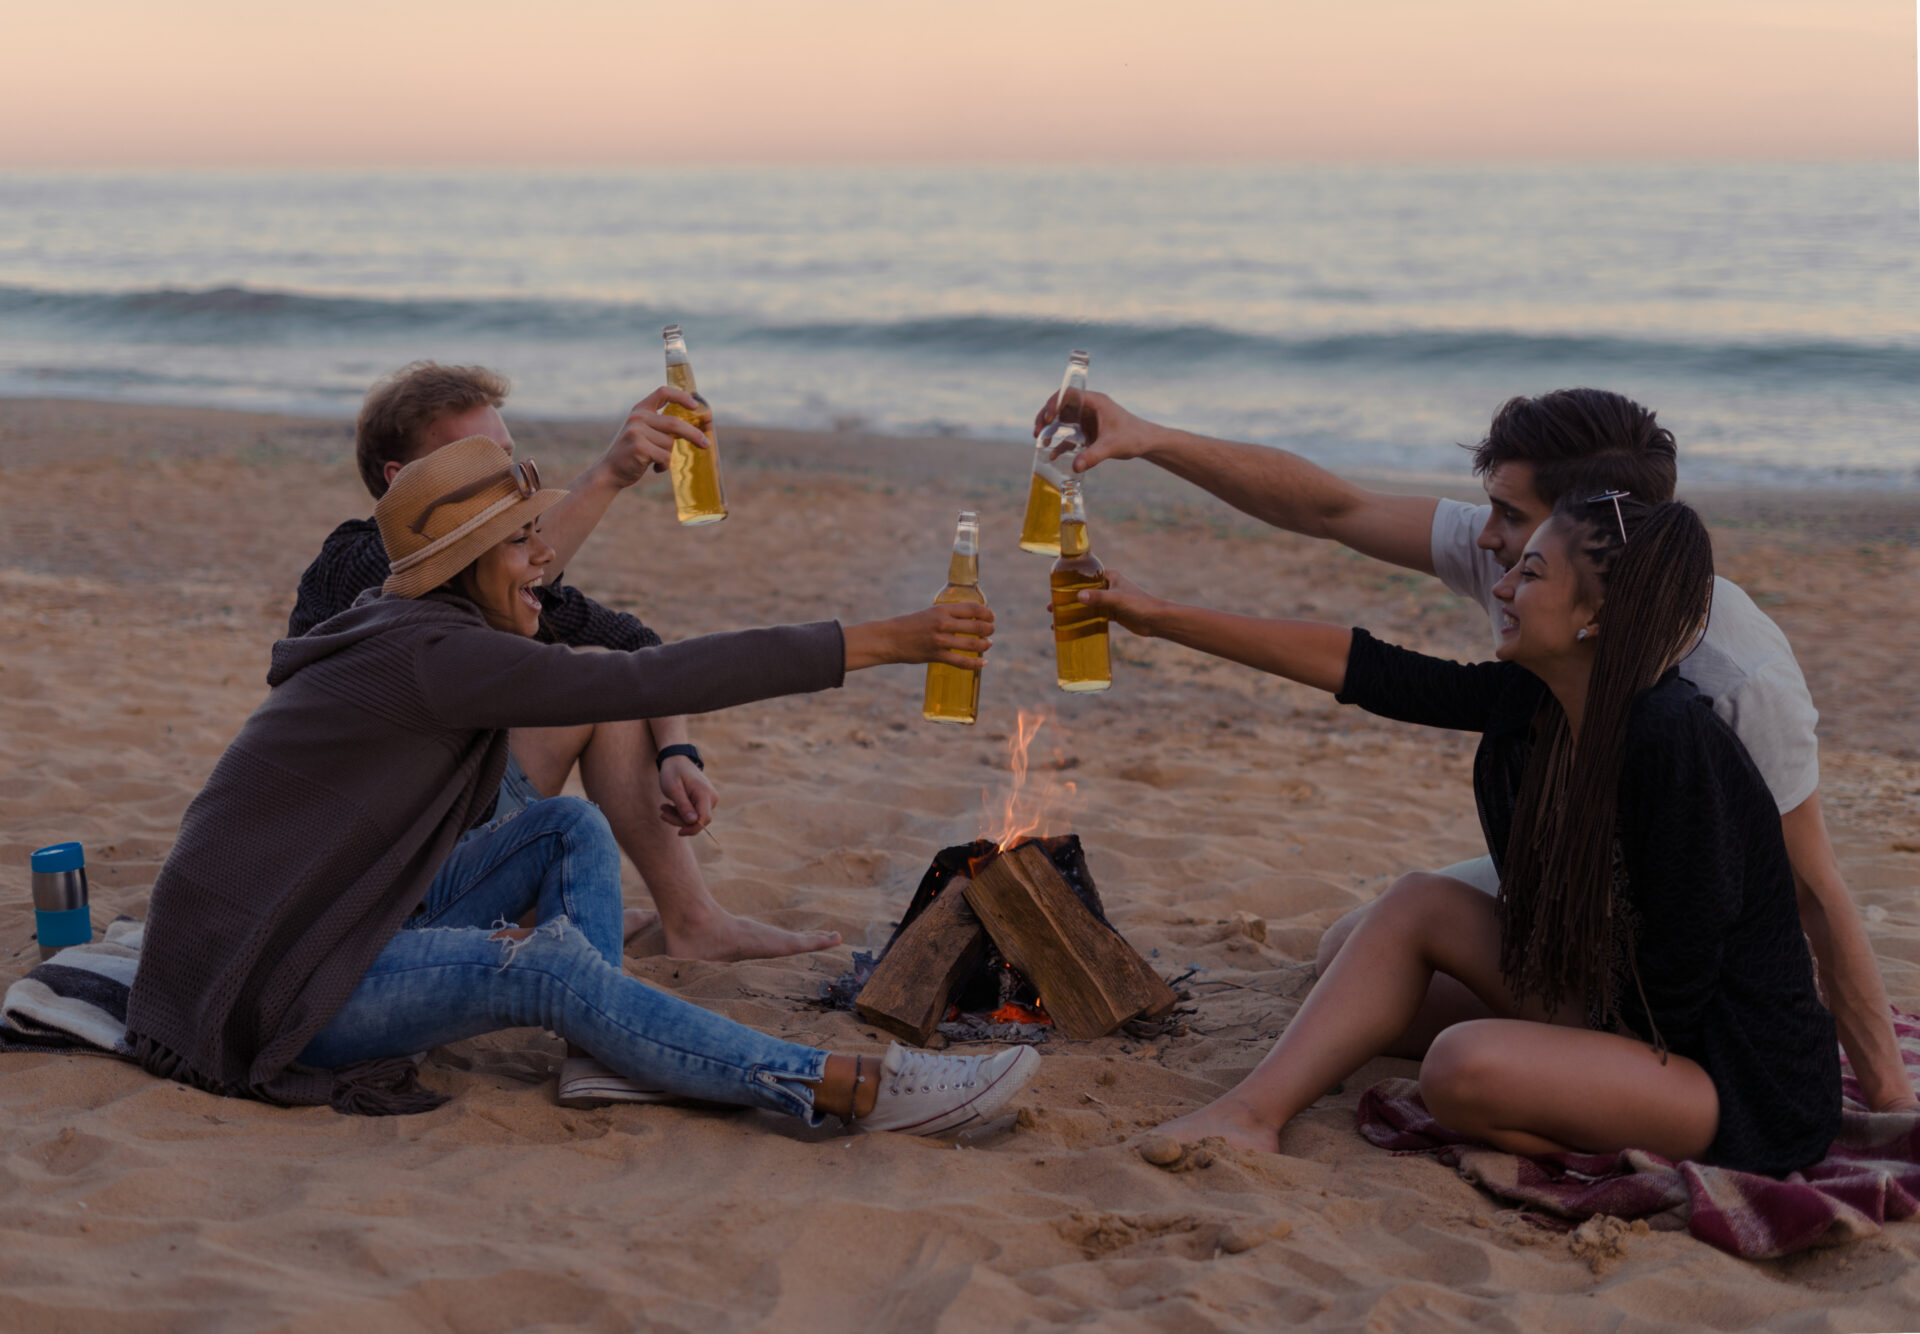 Drinking on the beach